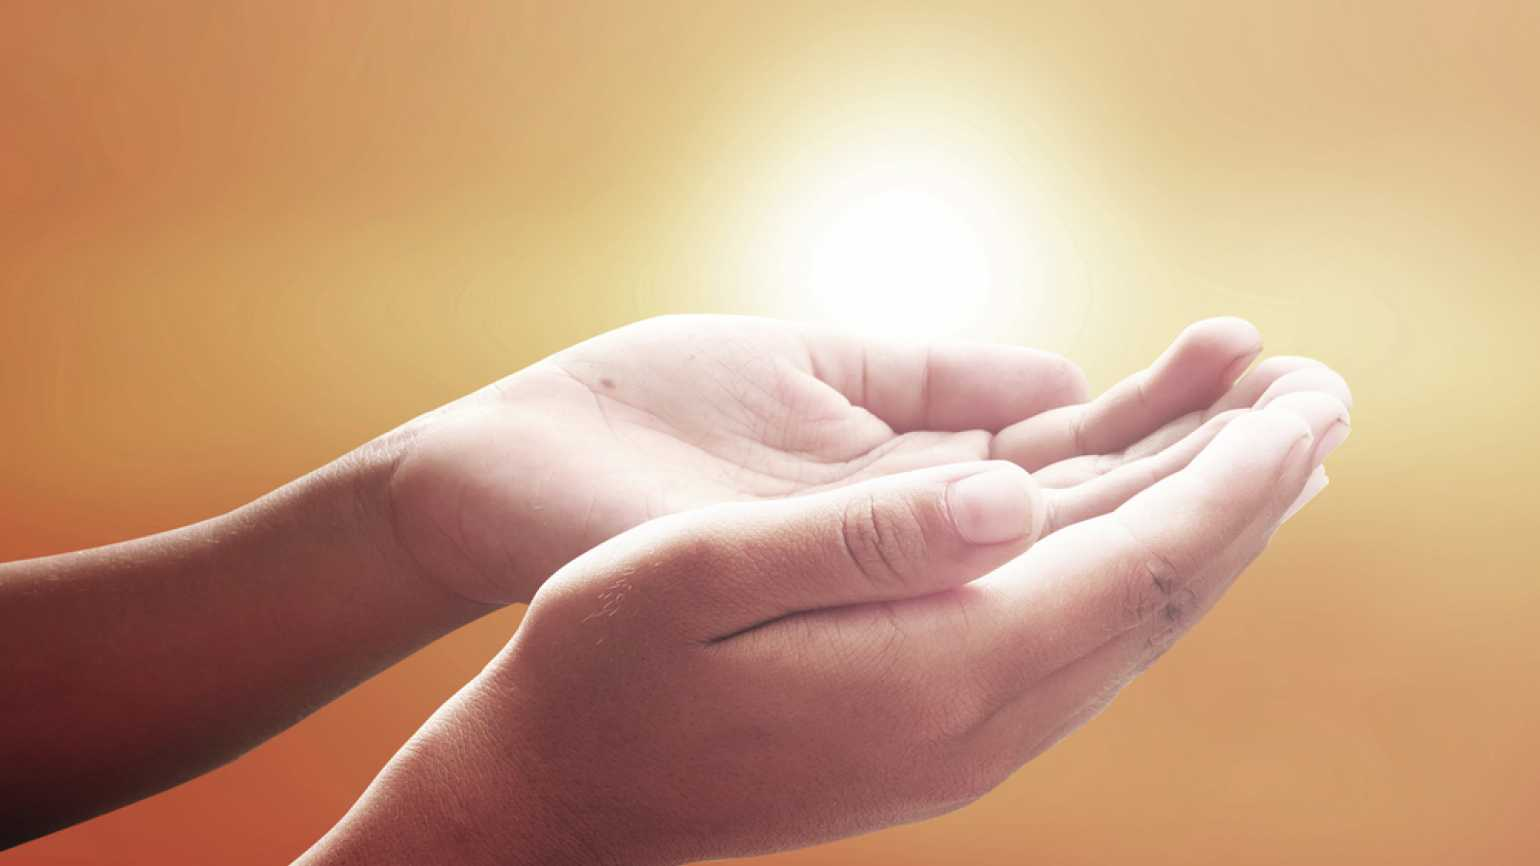 hands positioned in prayer in front of a sunrise